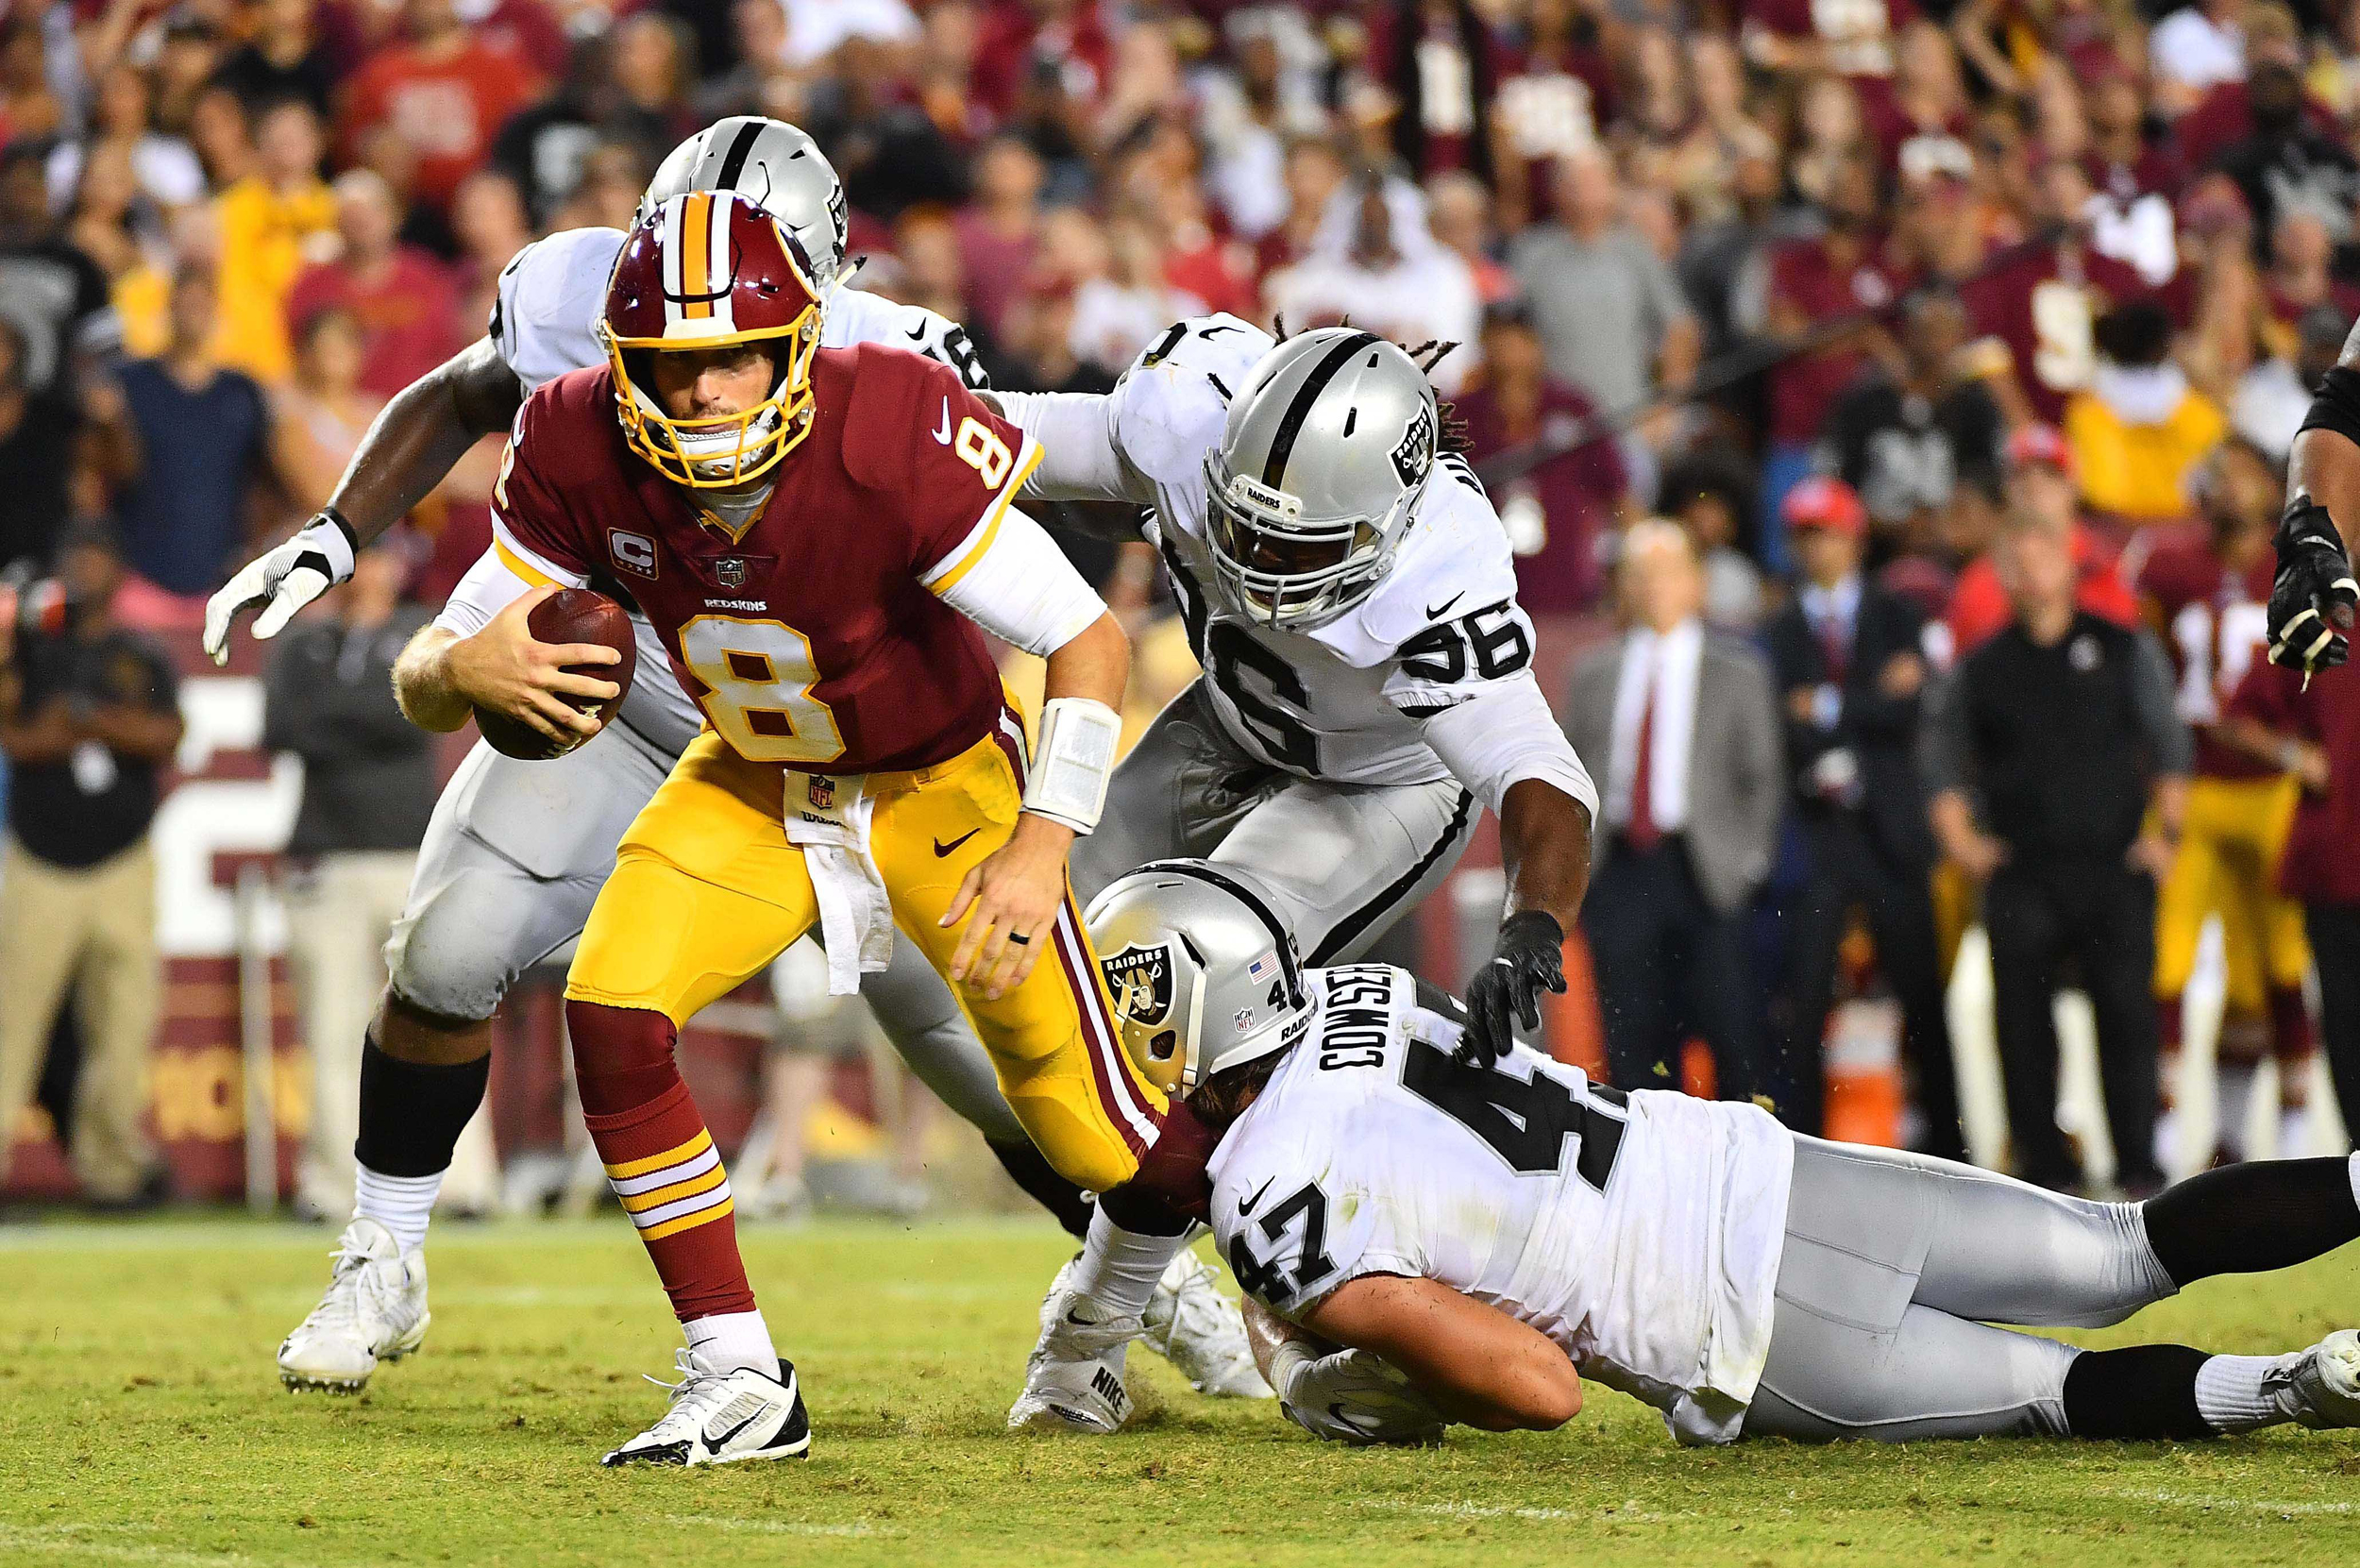 Image: NFL: Oakland Raiders at Washington Redskins